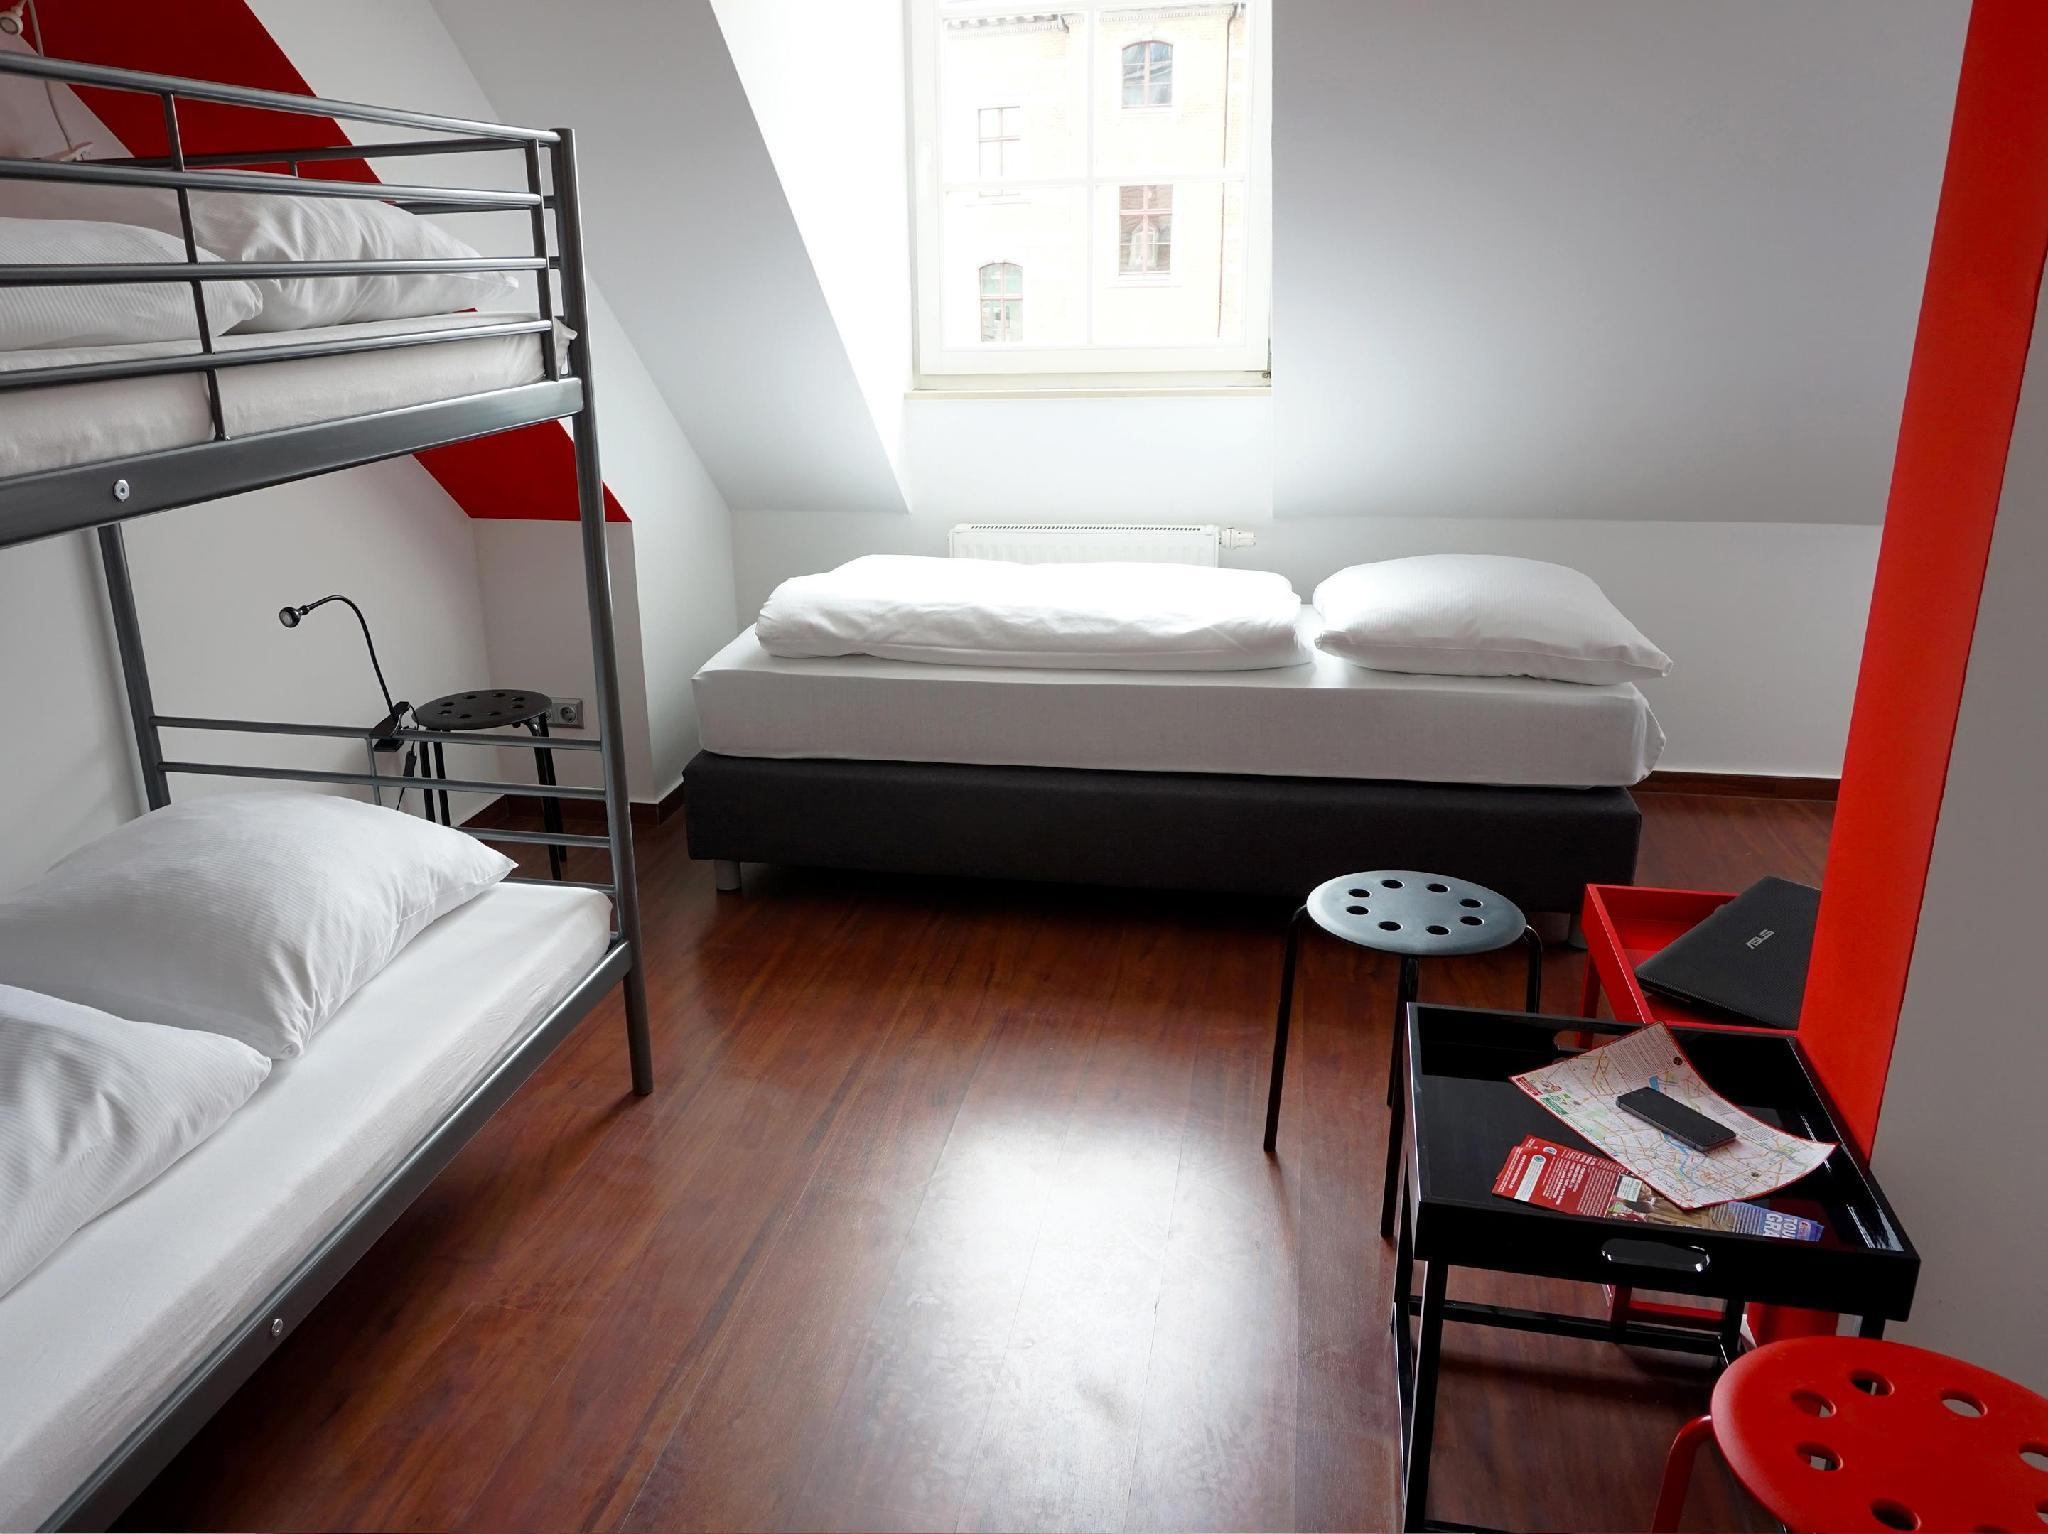 1 Bett in 5-Bett gemischtem Schlafsaal mit Privatem Bad (1 Bed in 5-Bed Dormitory (Mixed) with Private Bathroom)